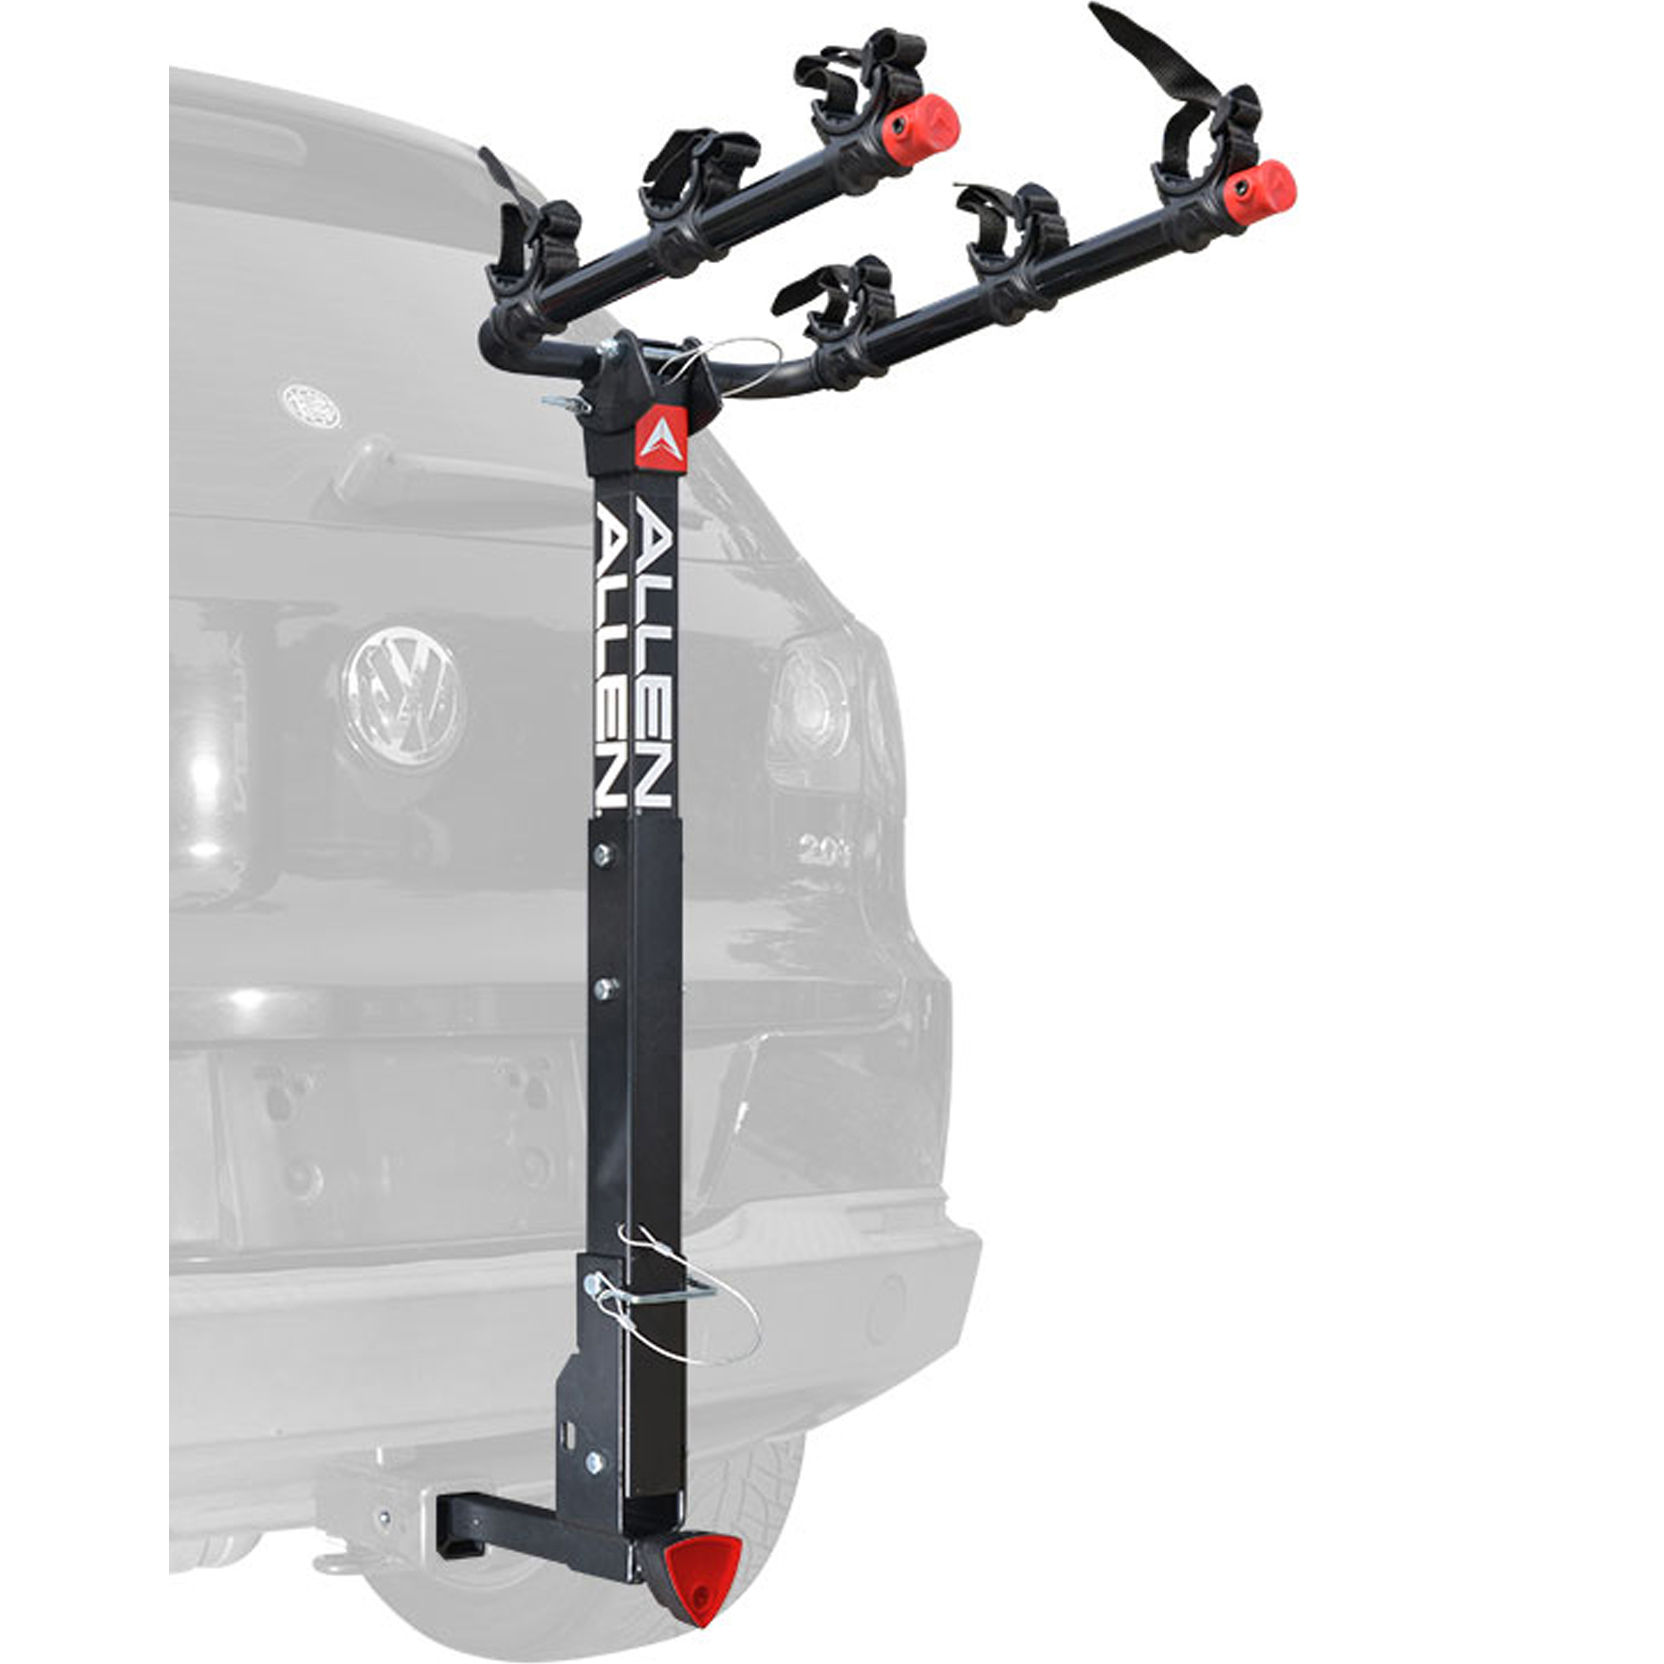 DELUXE QUICK INSTALL LOCKING 3-BIKE HITCH